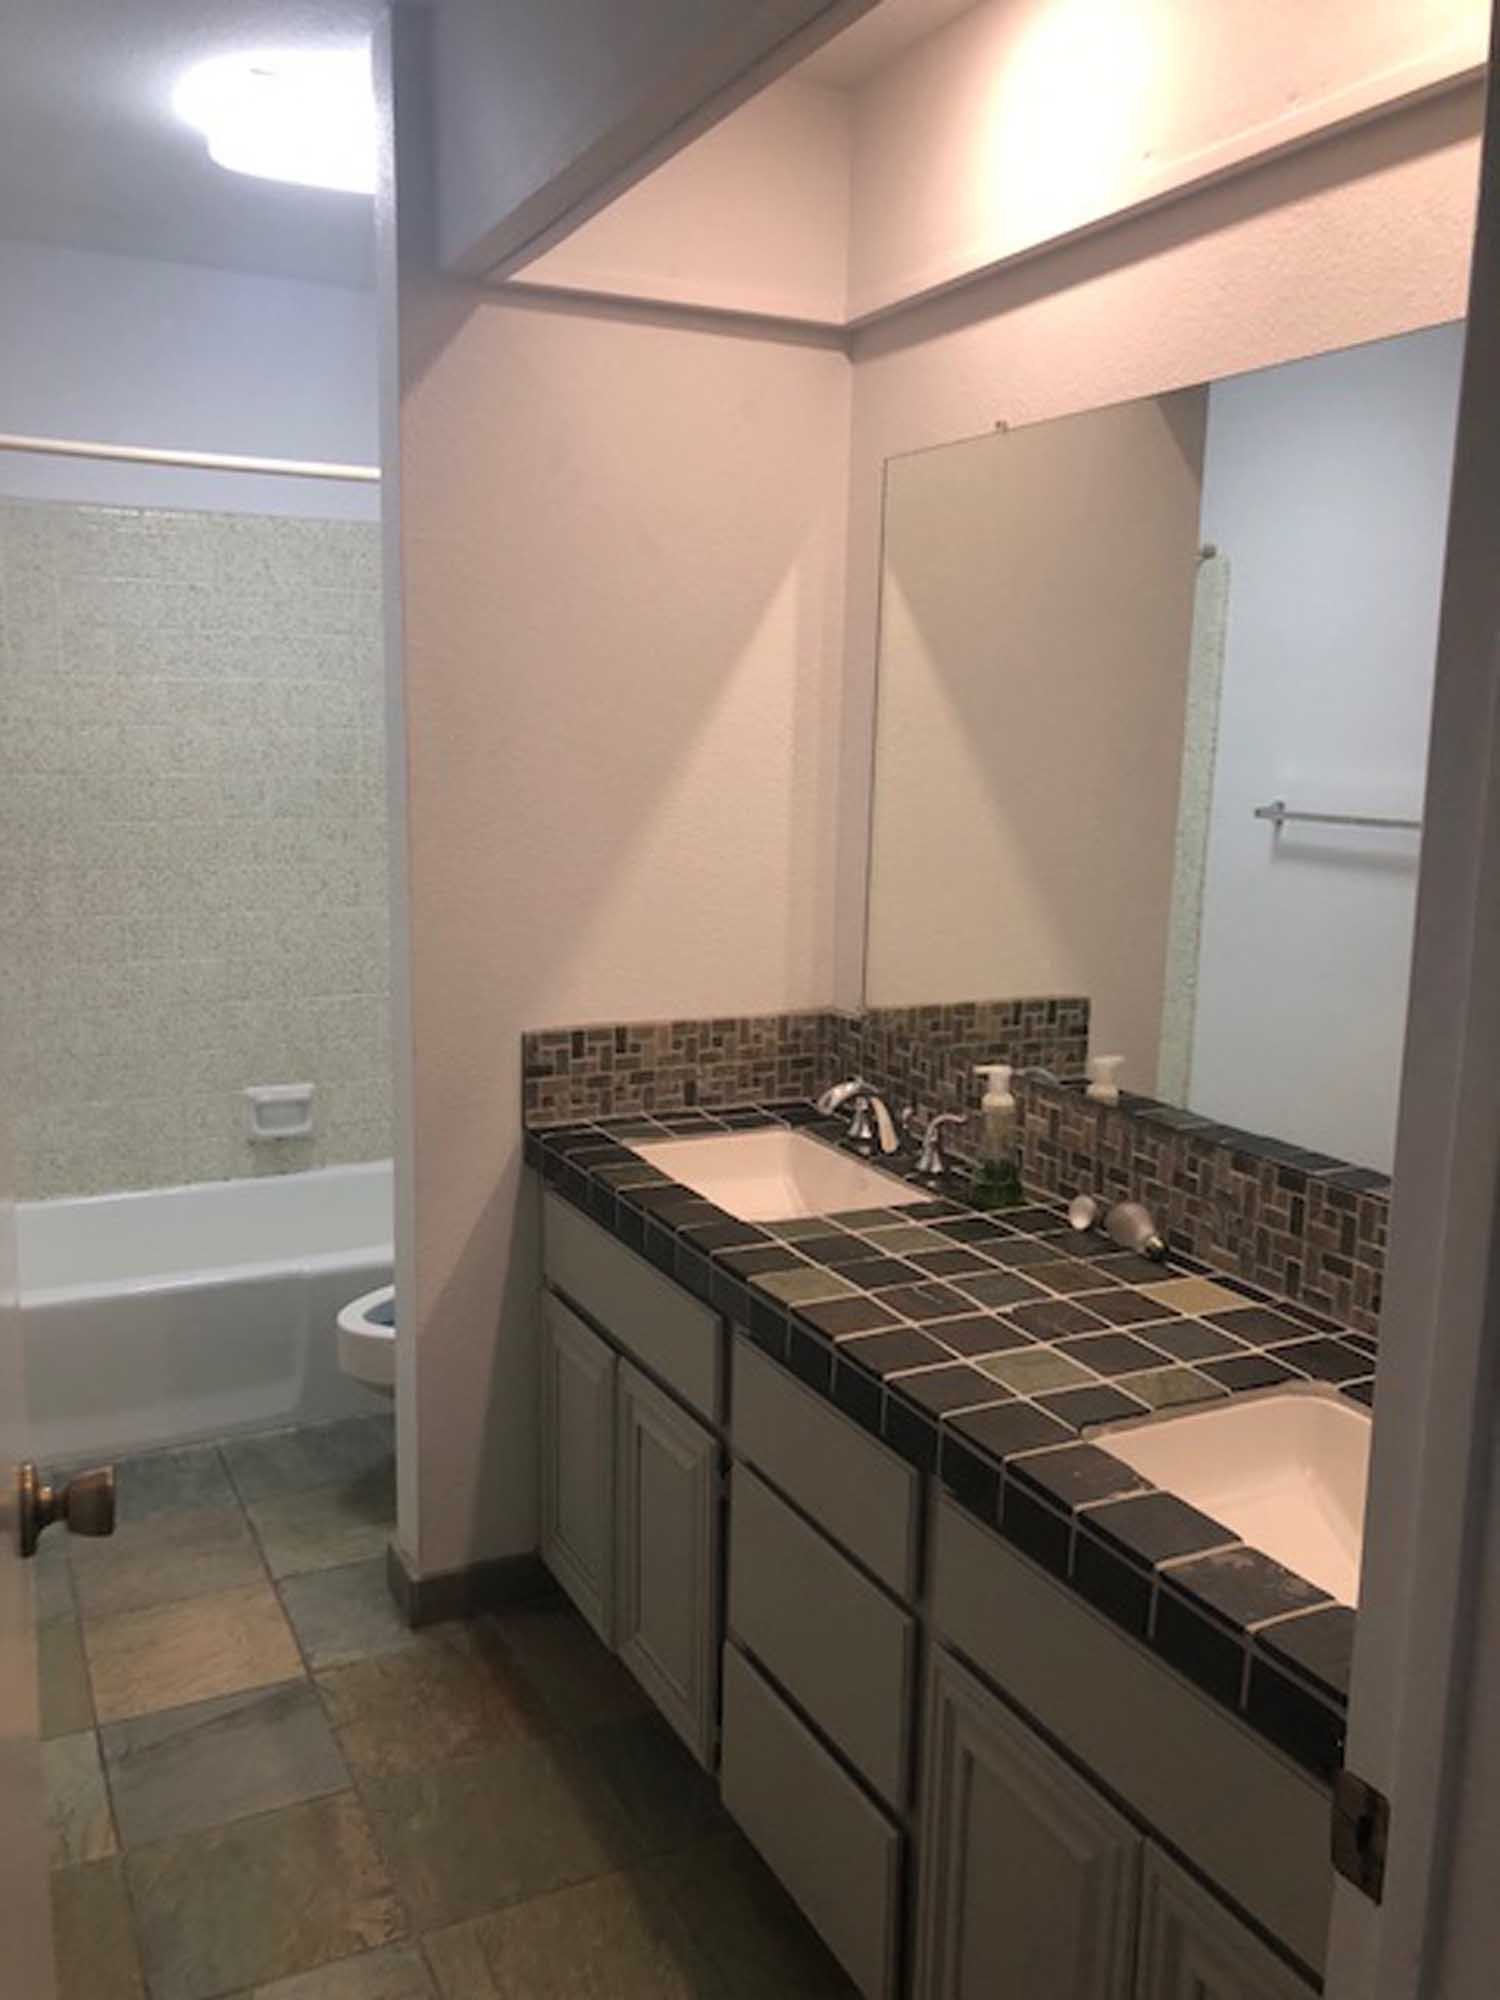 Toilet and bath with lavatory